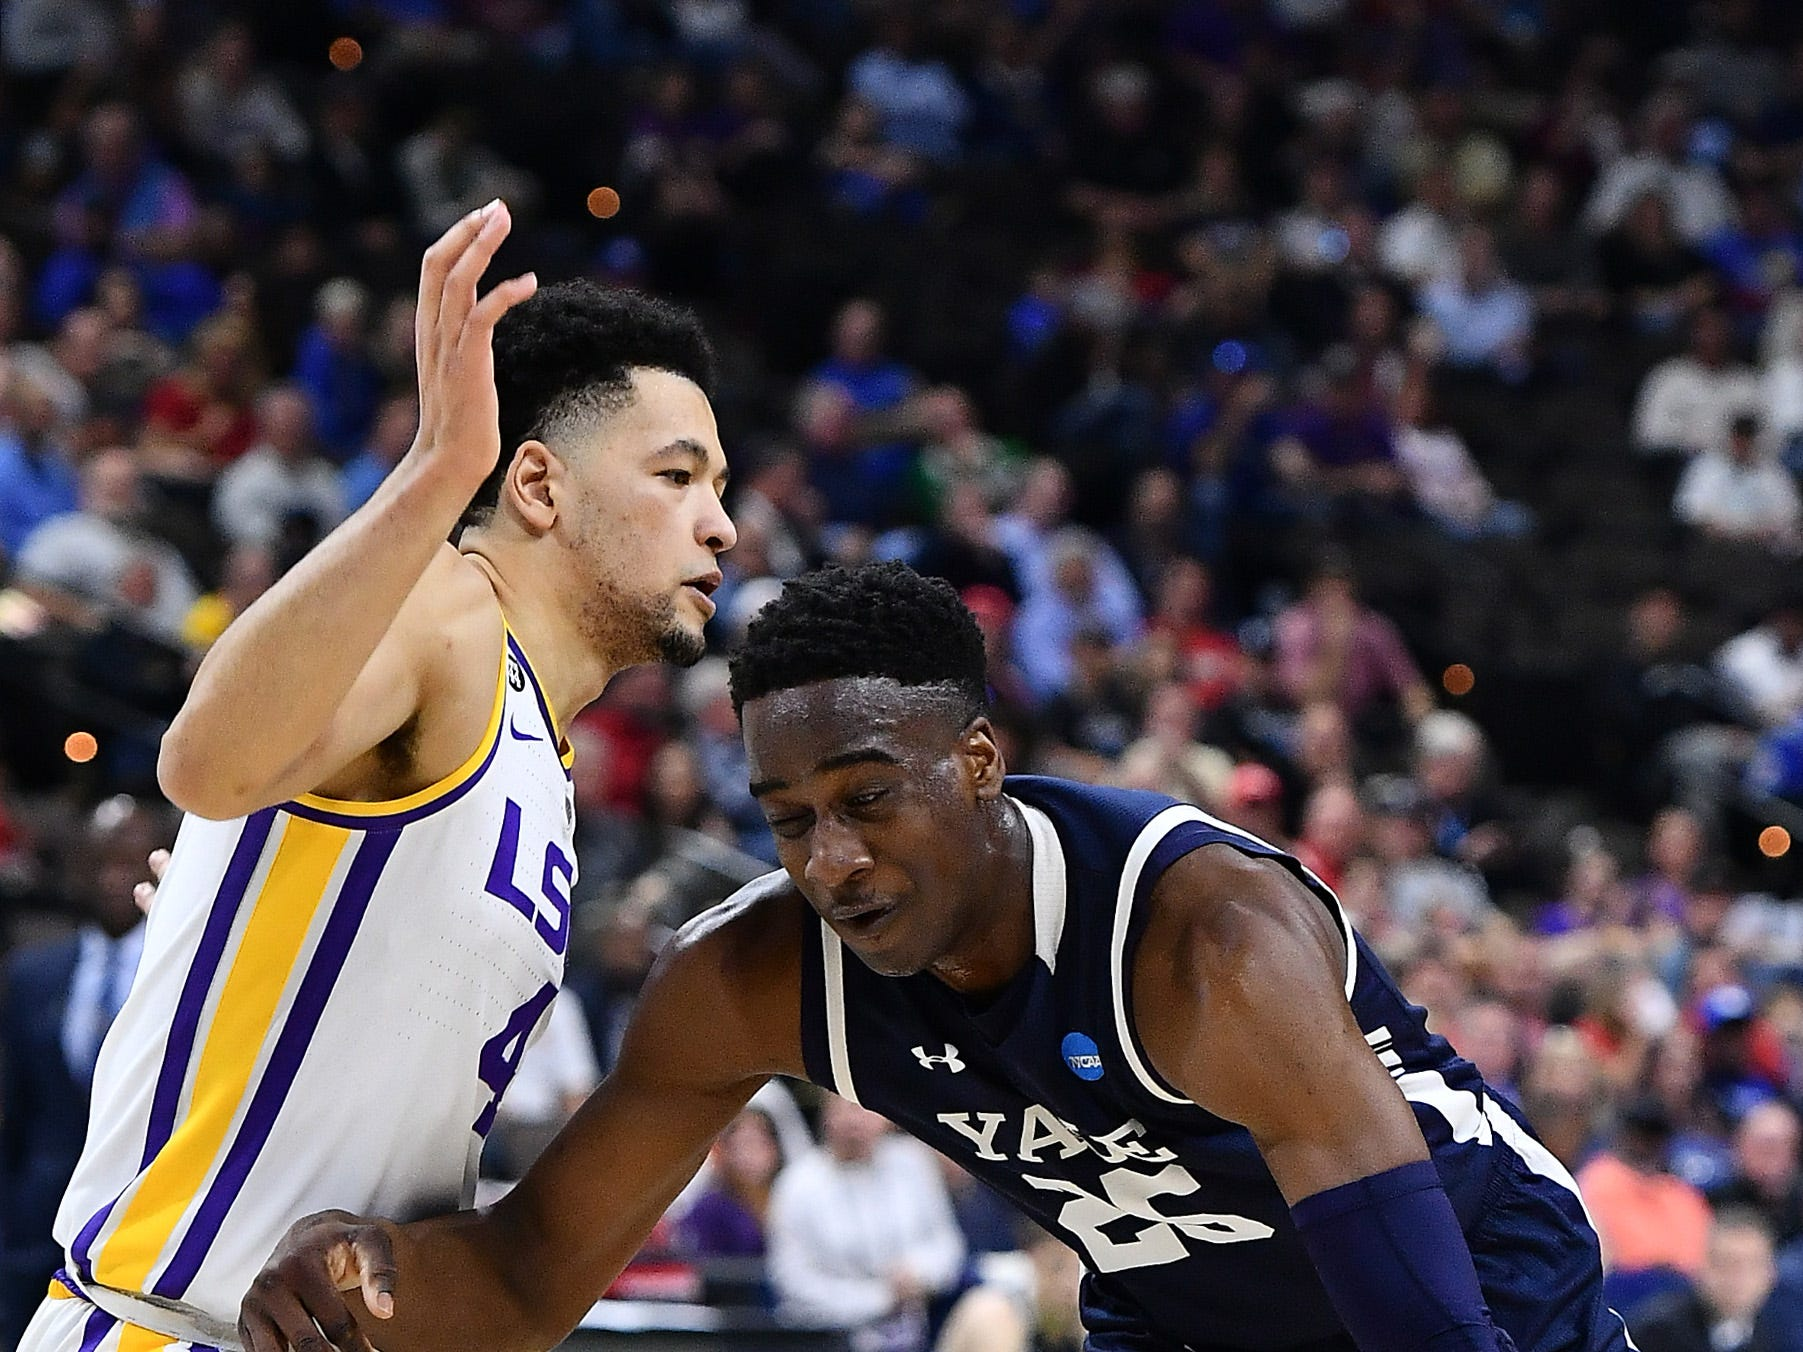 Mar 21, 2019; Jacksonville, FL, USA; Yale Bulldogs guard Miye Oni (25) drives against LSU Tigers guard Skylar Mays (4) during the first half in the first round of the 2019 NCAA Tournament at Jacksonville Veterans Memorial Arena. Mandatory Credit: John David Mercer-USA TODAY Sports